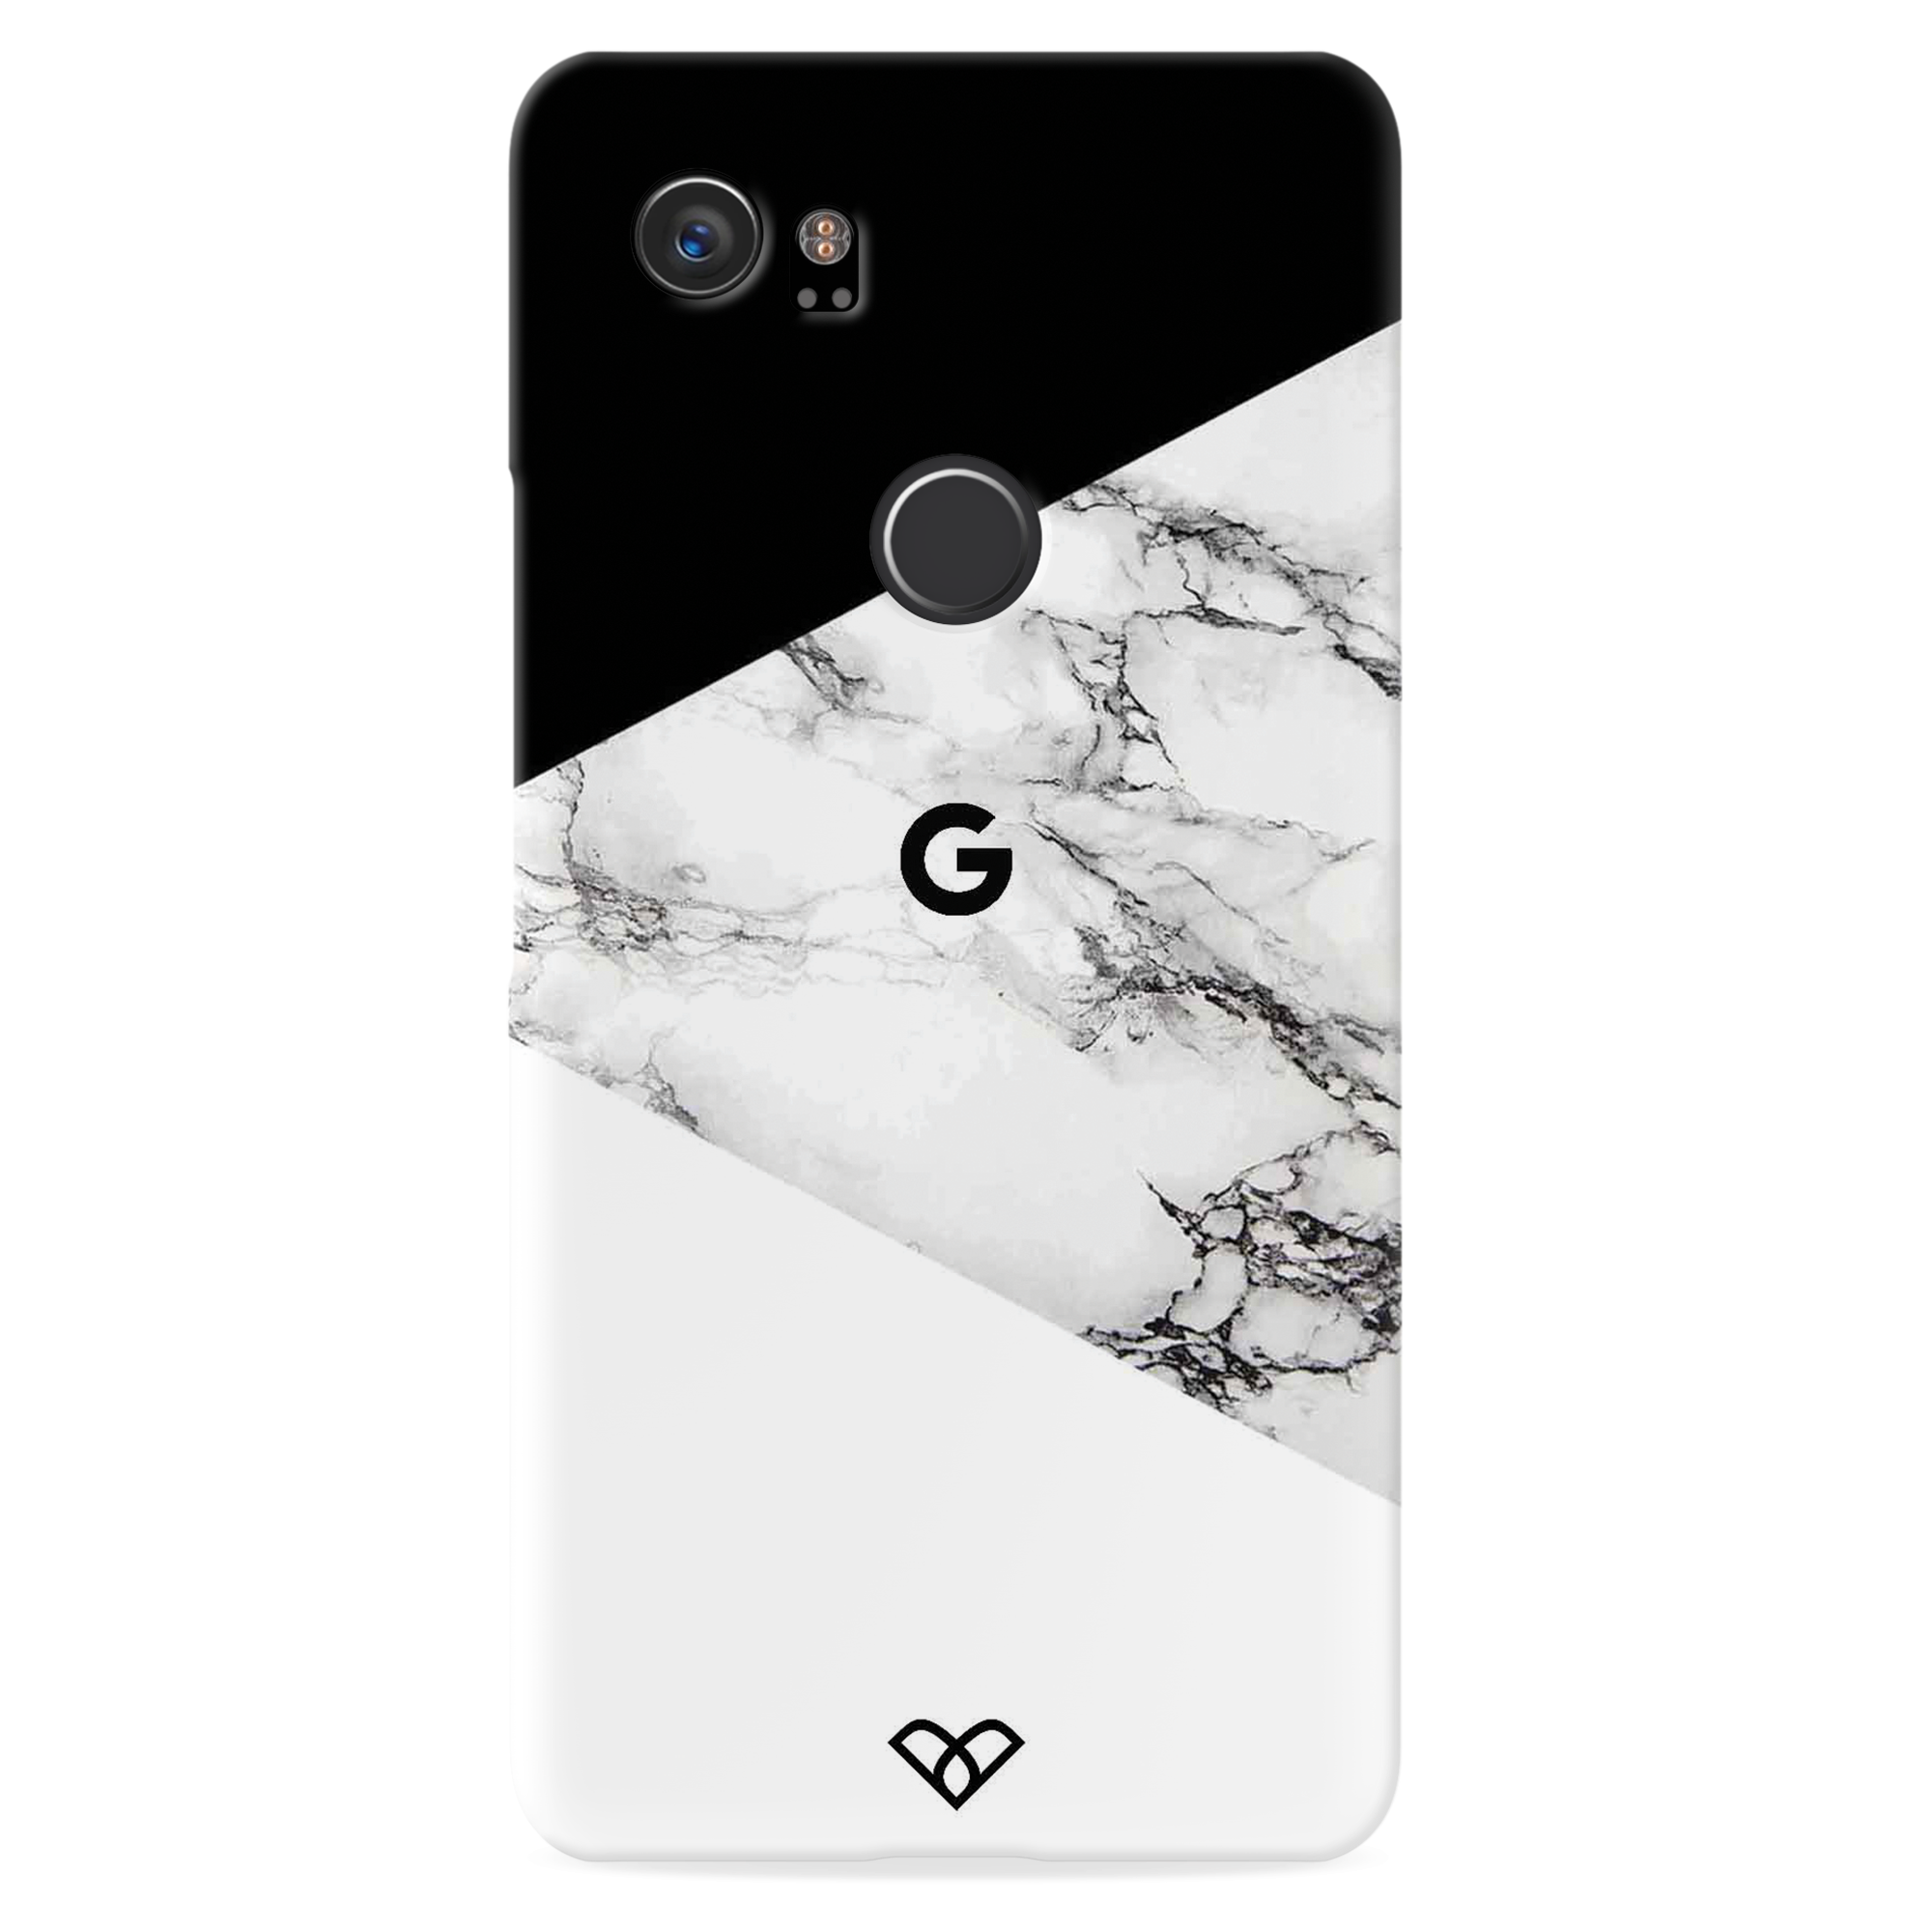 Geometric White Marble Textured Slim Case And Cover For Pixel 2 XL